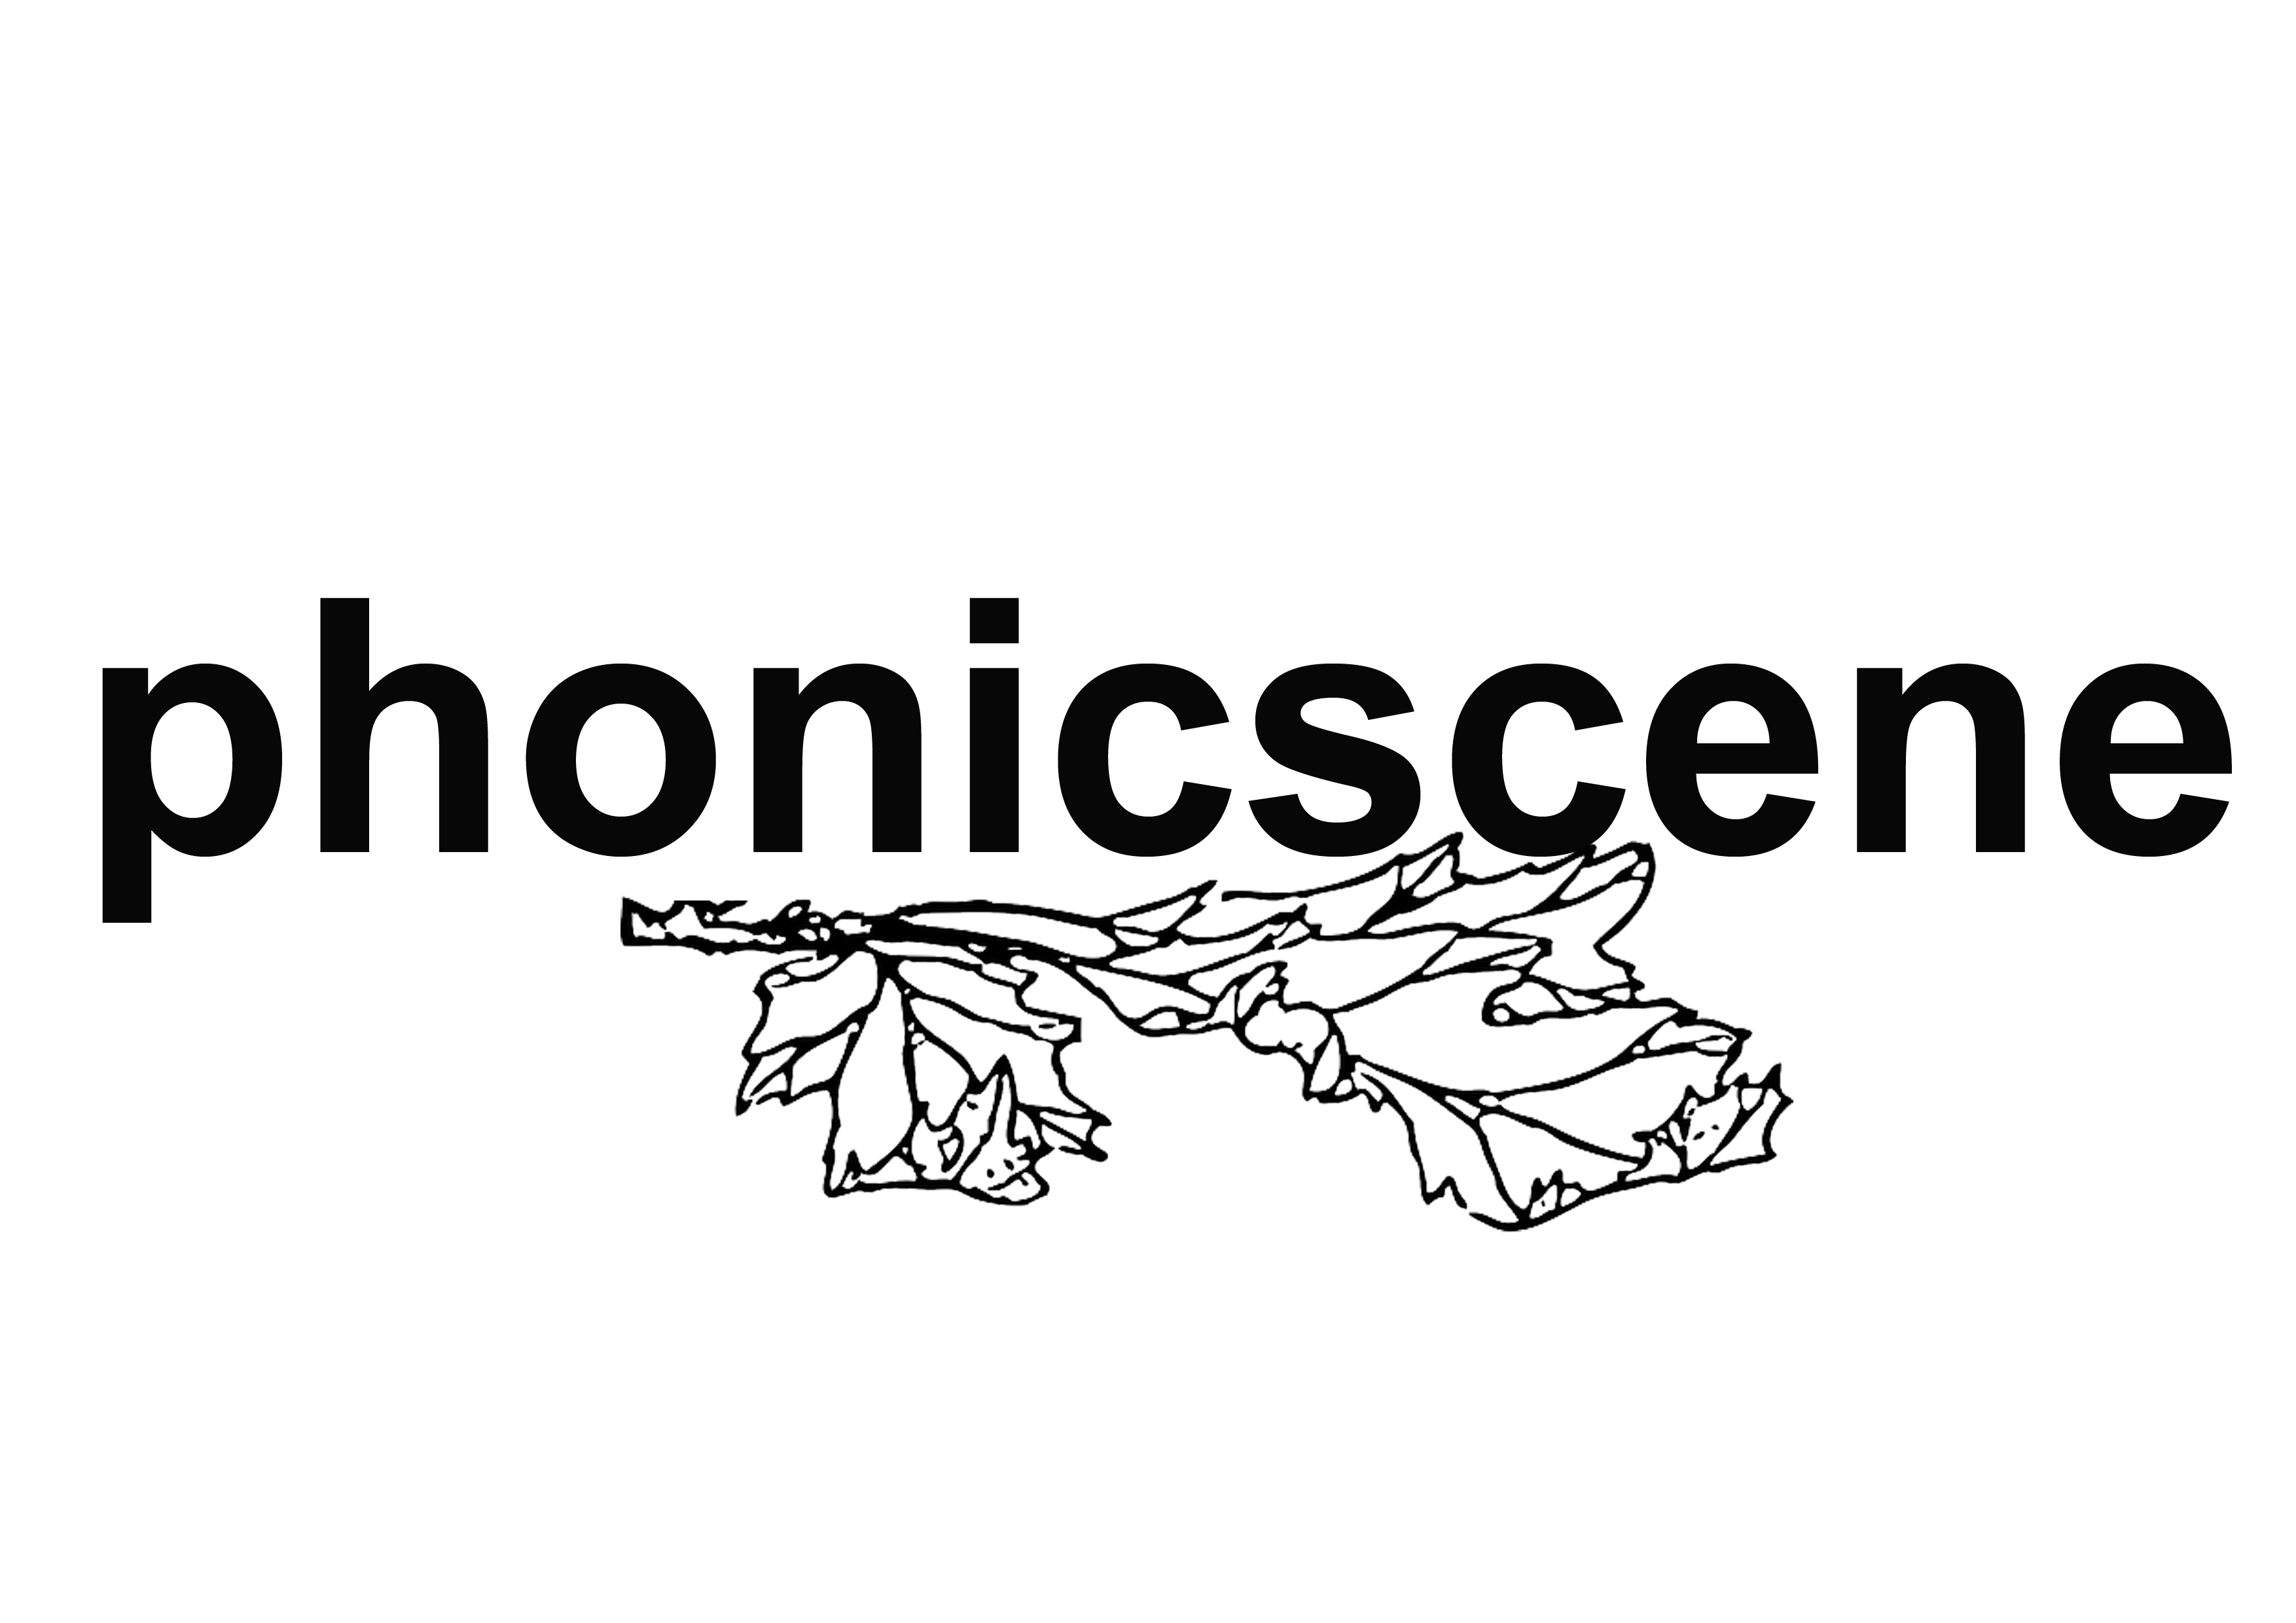 phonicscene